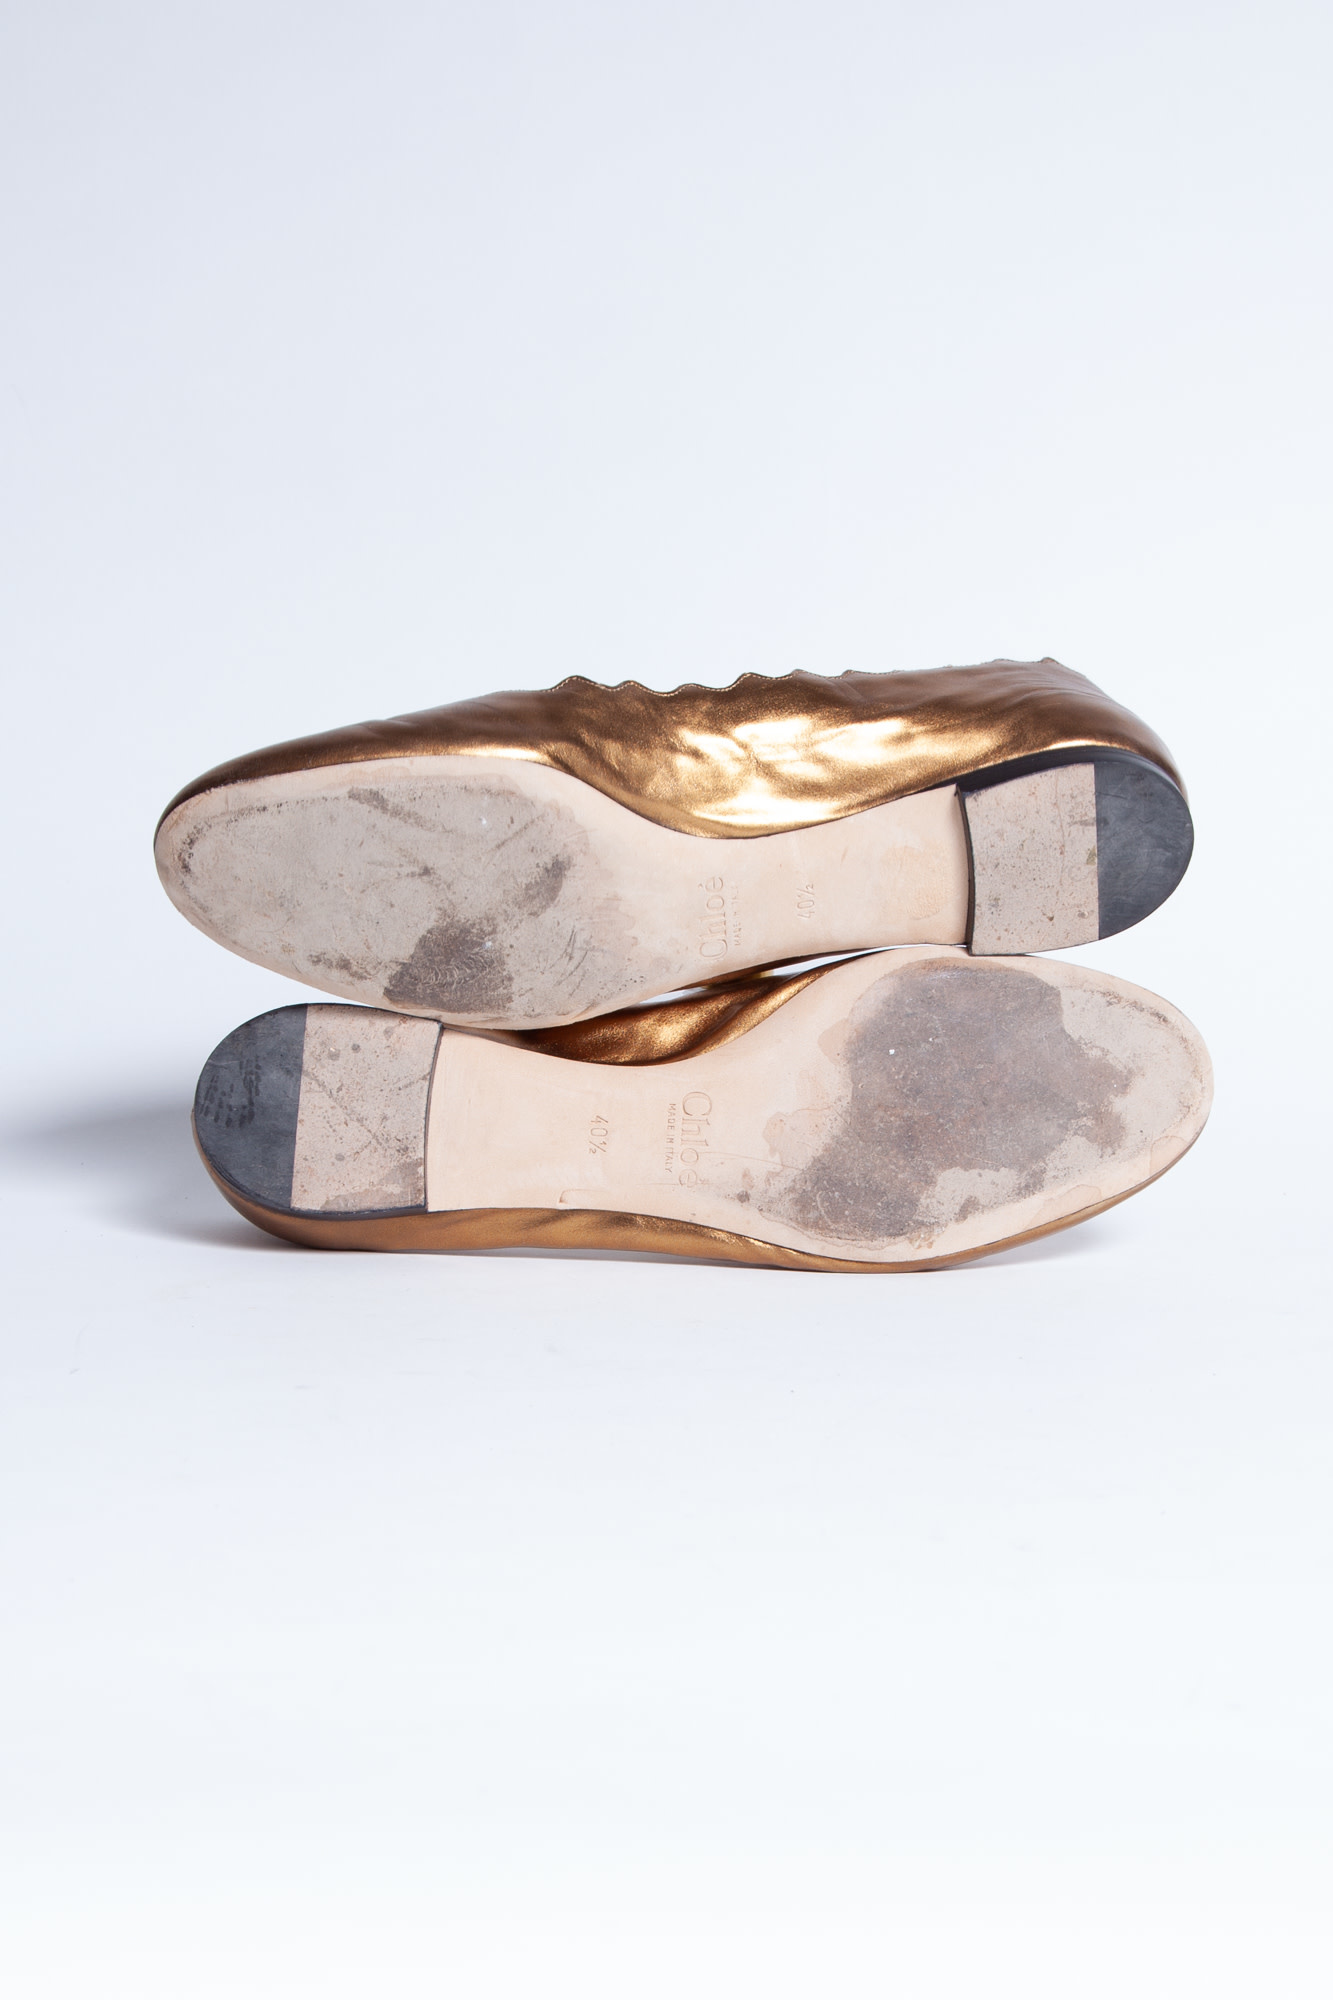 Chloé BALLERINAS WITH  GOLDEN SCALLOPED EDGES IN LEATHER